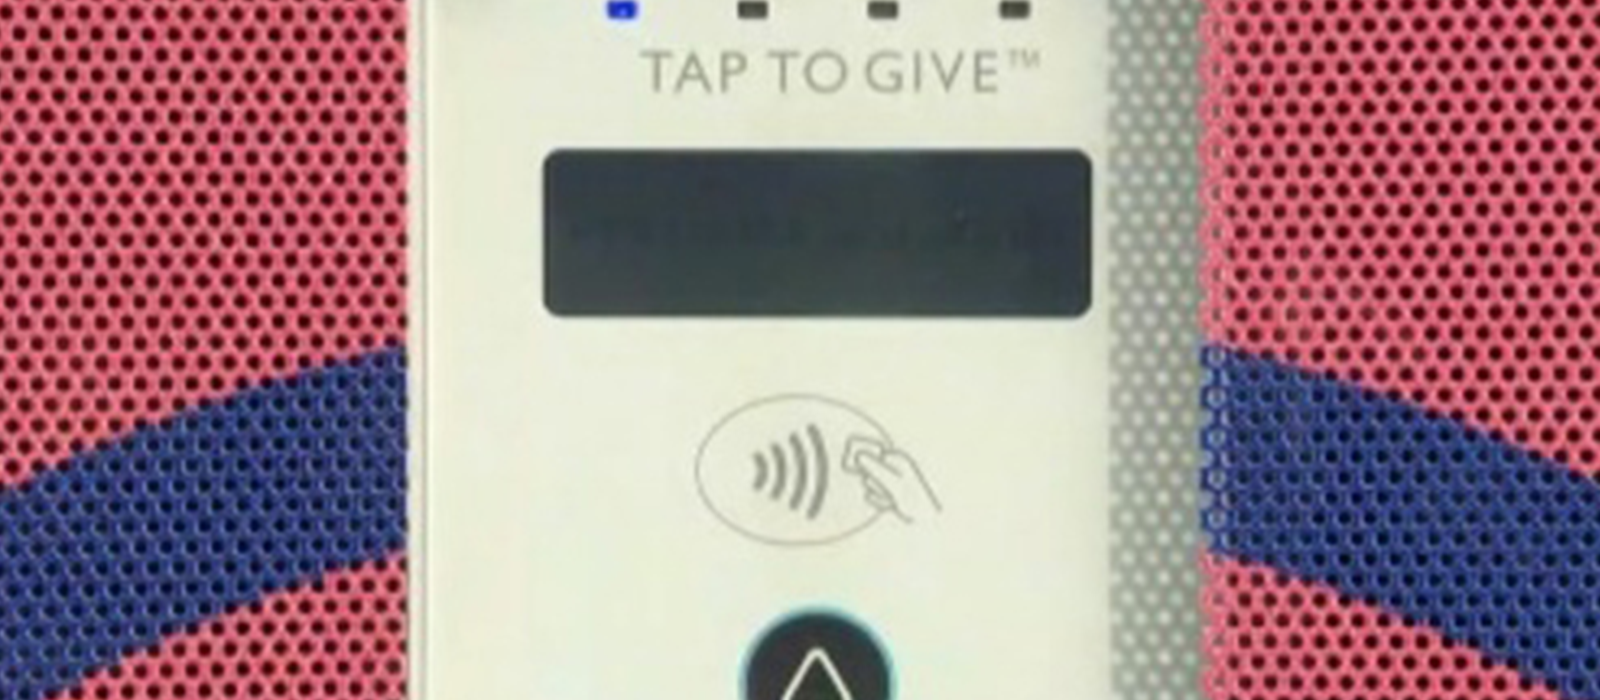 Close up photo of a contactless card machine